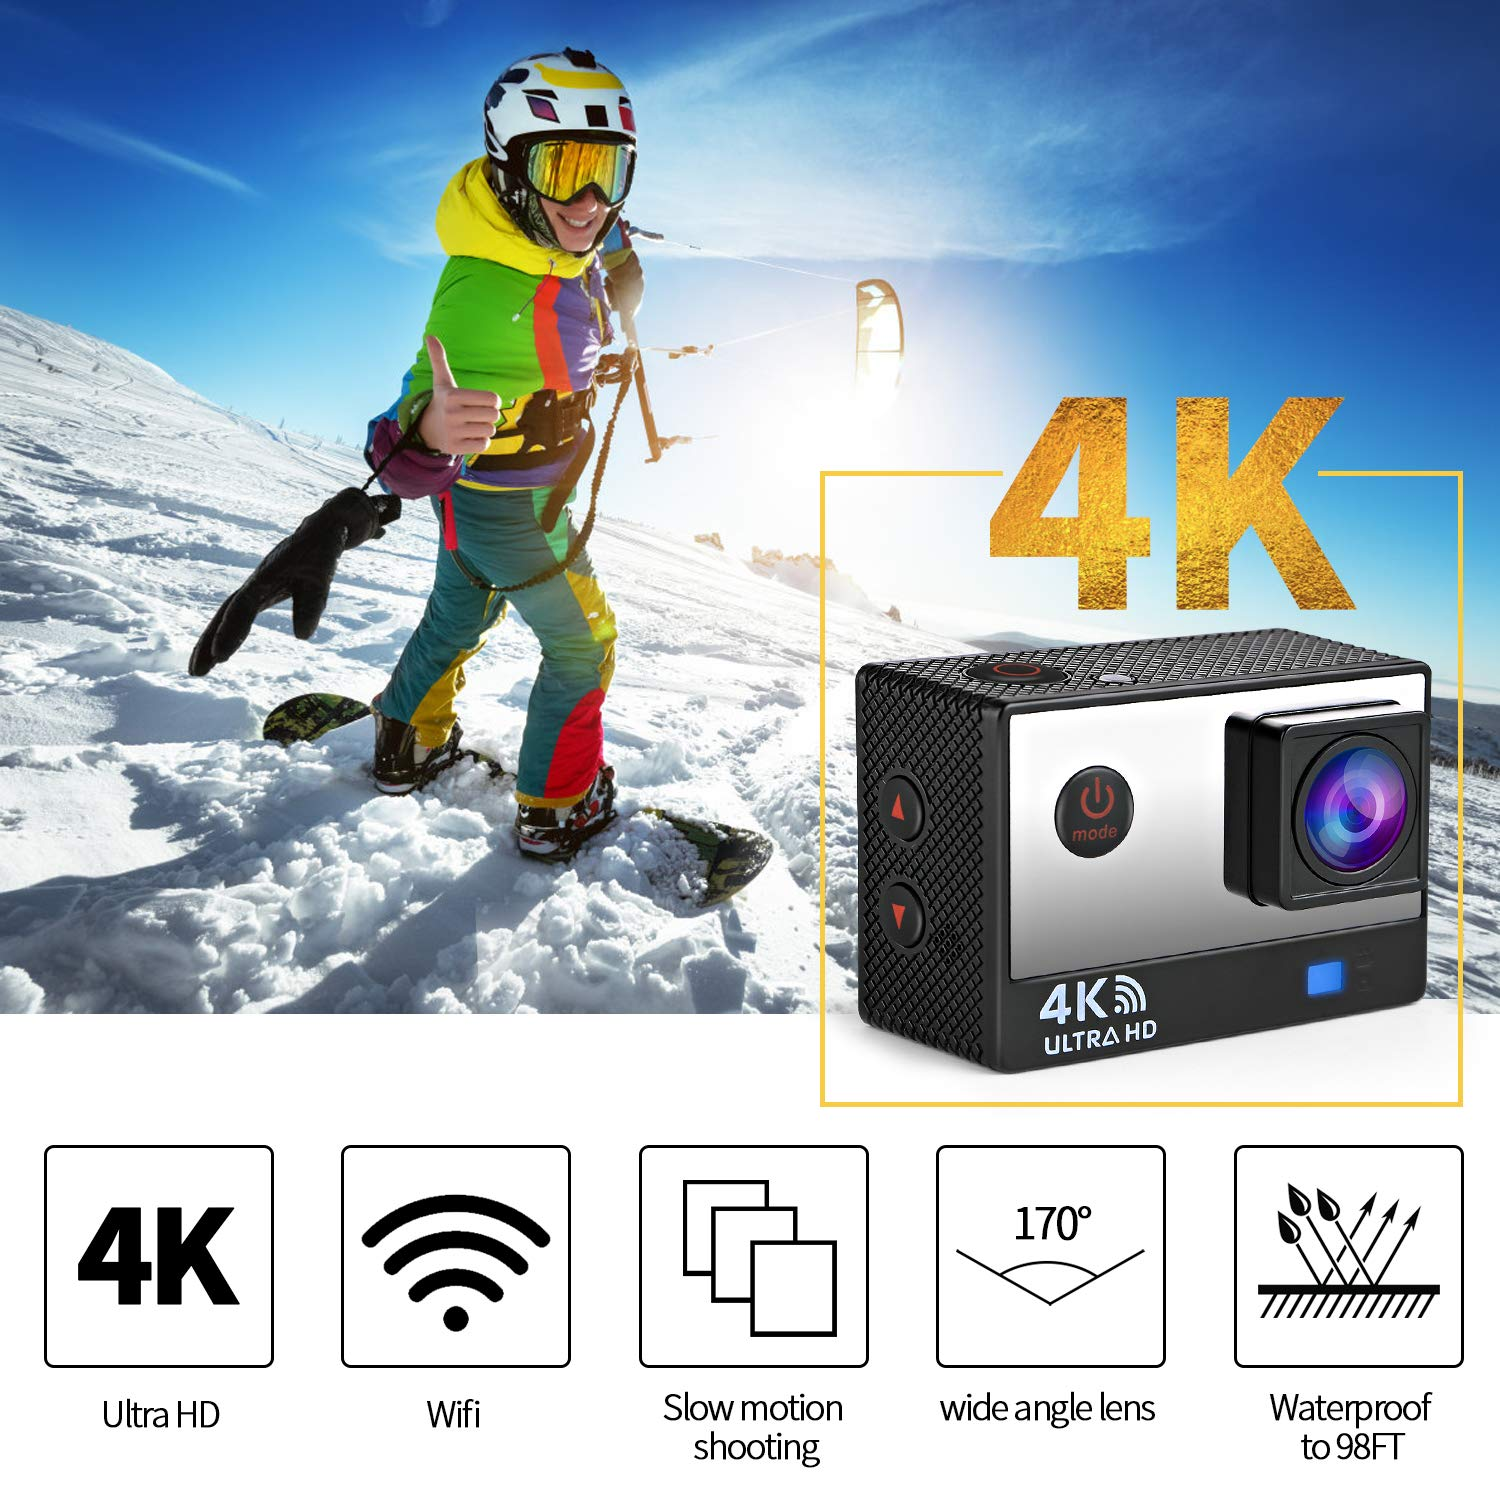 Ifecco 4K WiFi Sports Action Camera Ultra HD 16MP Waterproof Camera Underwater 30M Wide View Angle 170 ° with 2 1050mAh Batteries and Remote Control (Black)